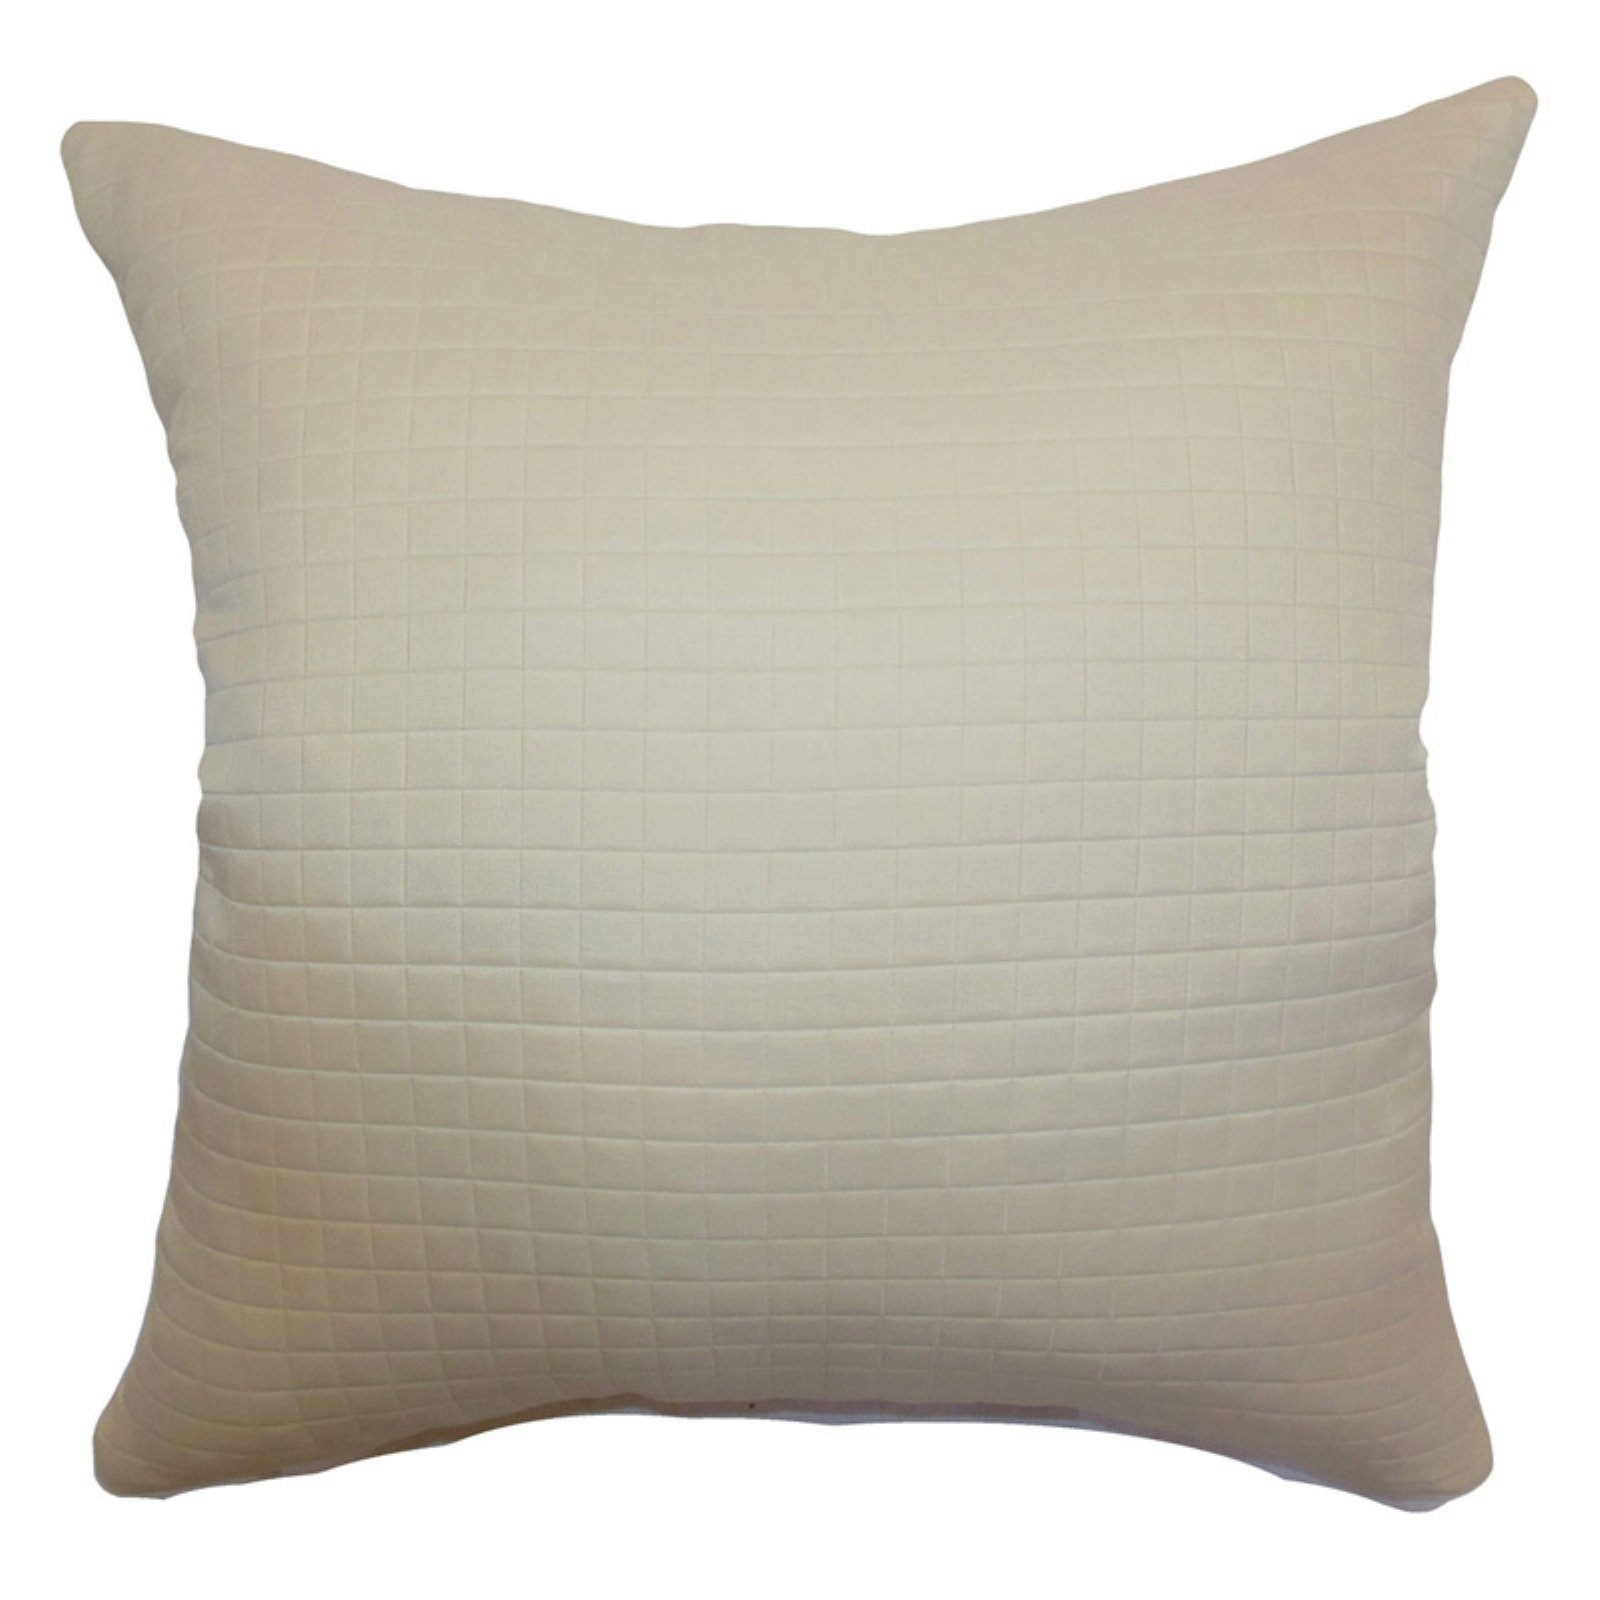 The Pillow Collection Obadiah Quilted Pillow - Creme